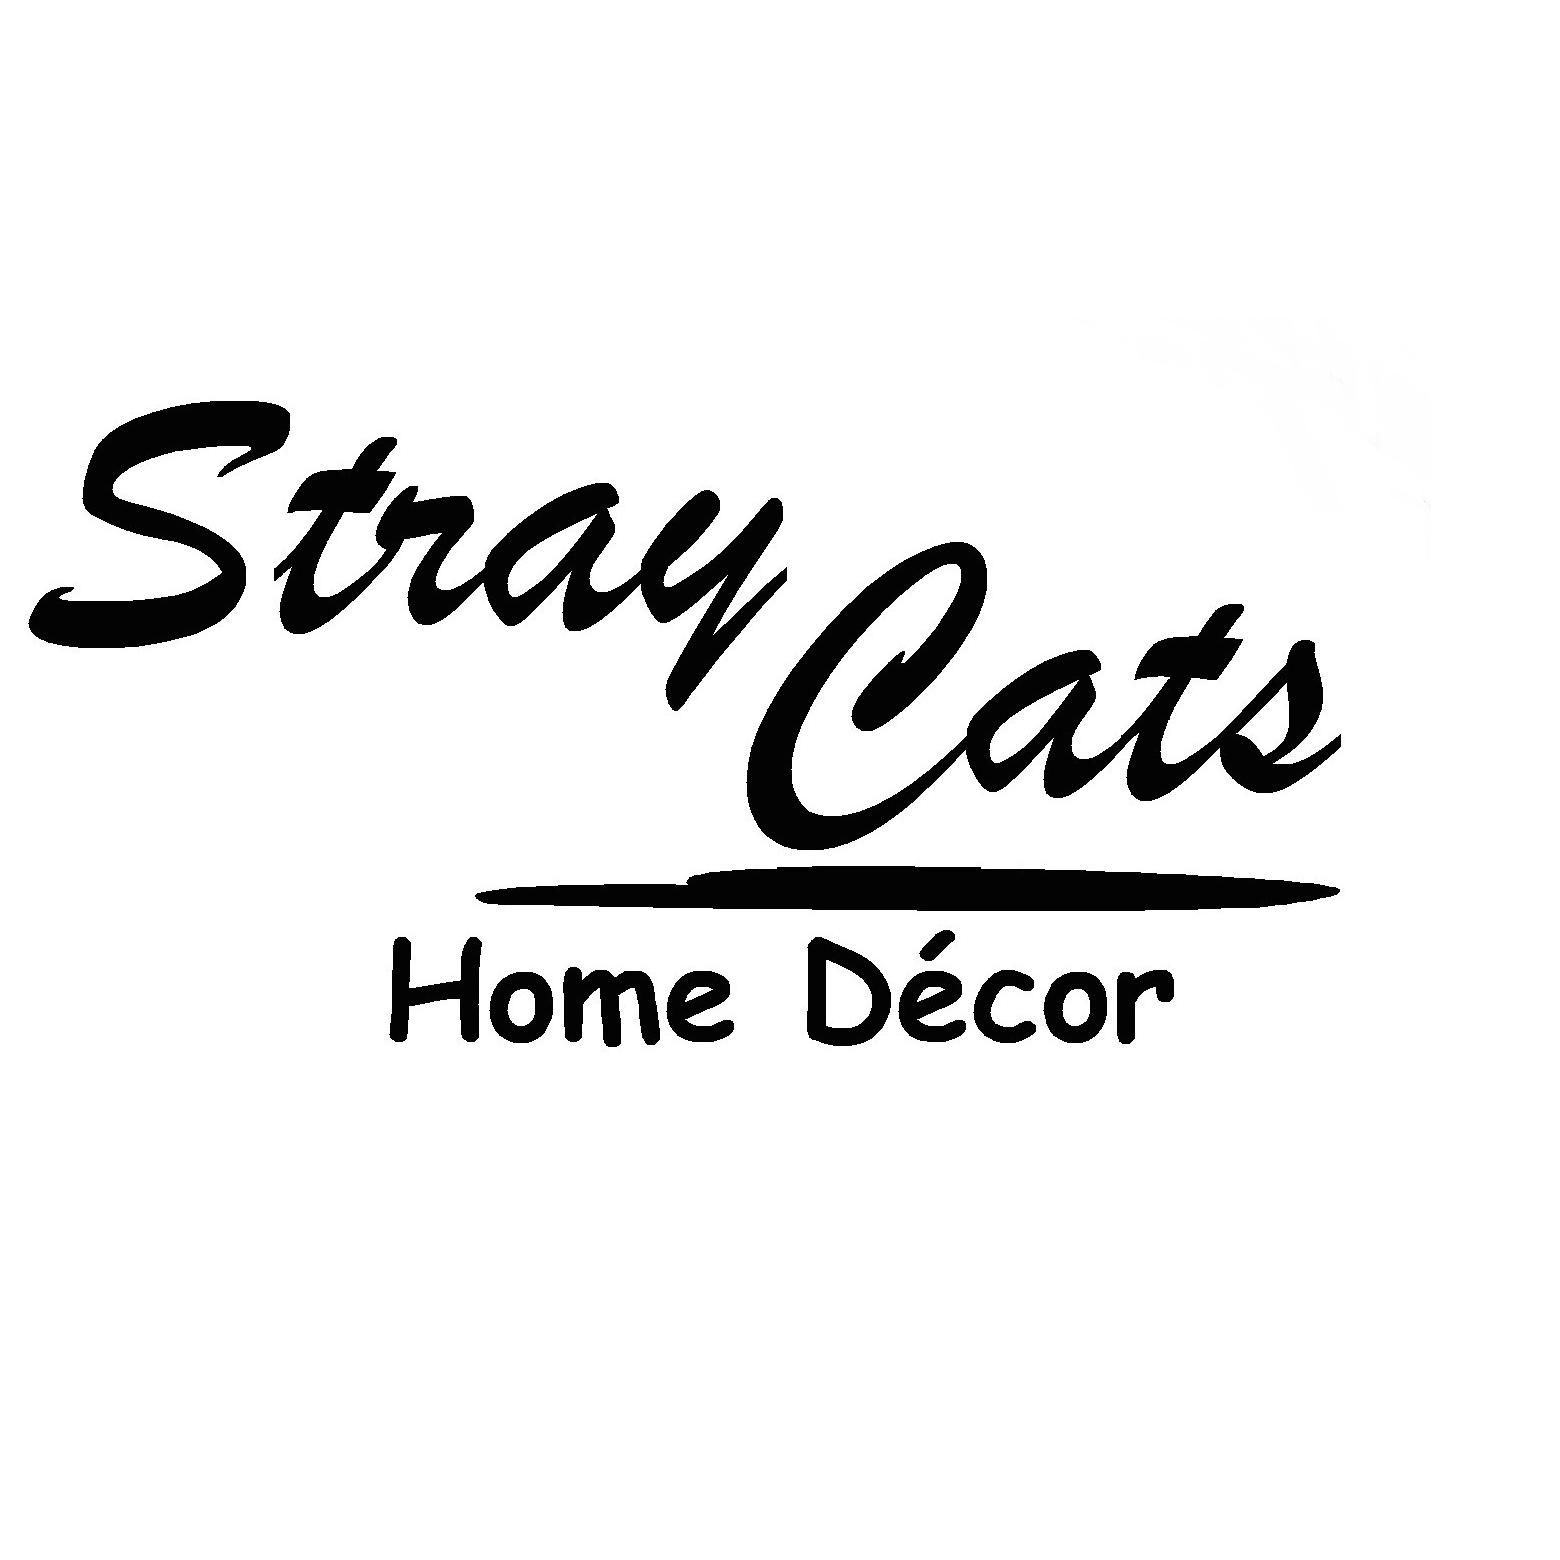 Stray cats home decor coupons near me in birmingham 8coupons for Home accents near me